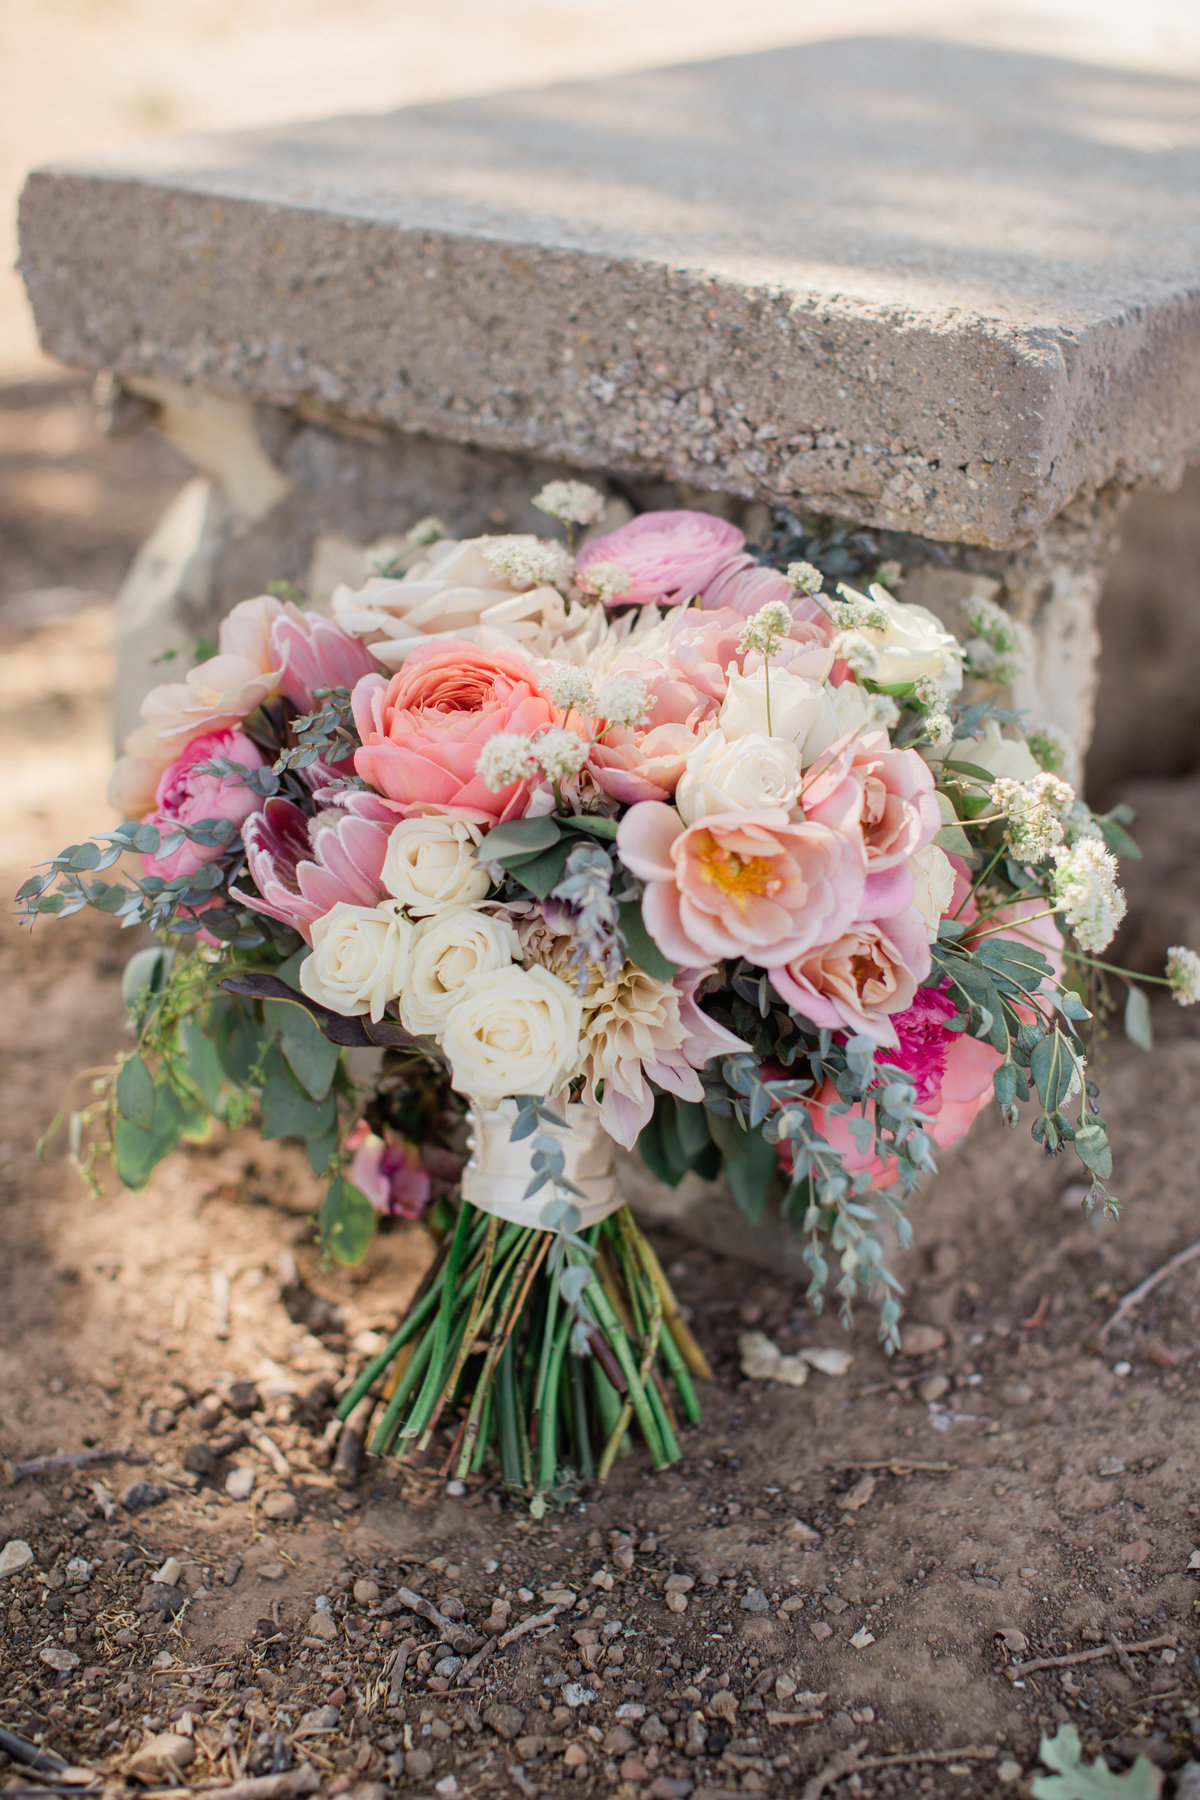 Jenna & Andrew's Oyster Ridge Wedding | Paso Robles Wedding Photographer | Katie Schoepflin Photography465